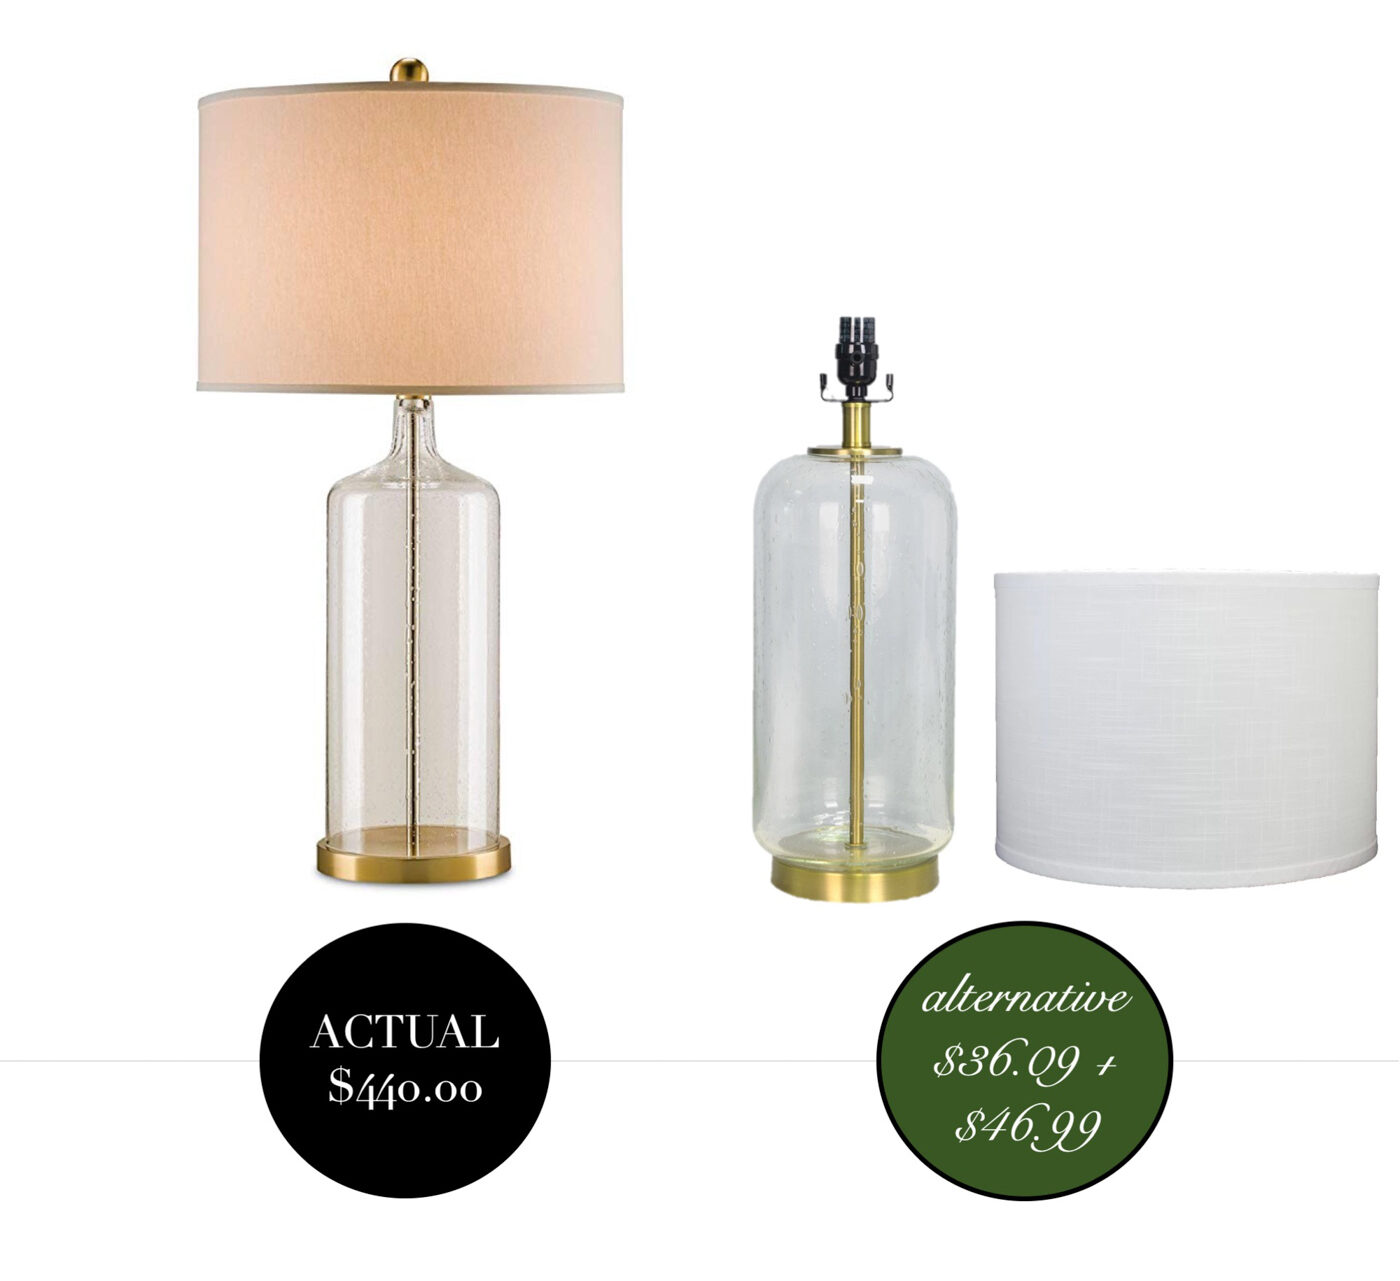 Designer lighting dupes- high and low and a look for less